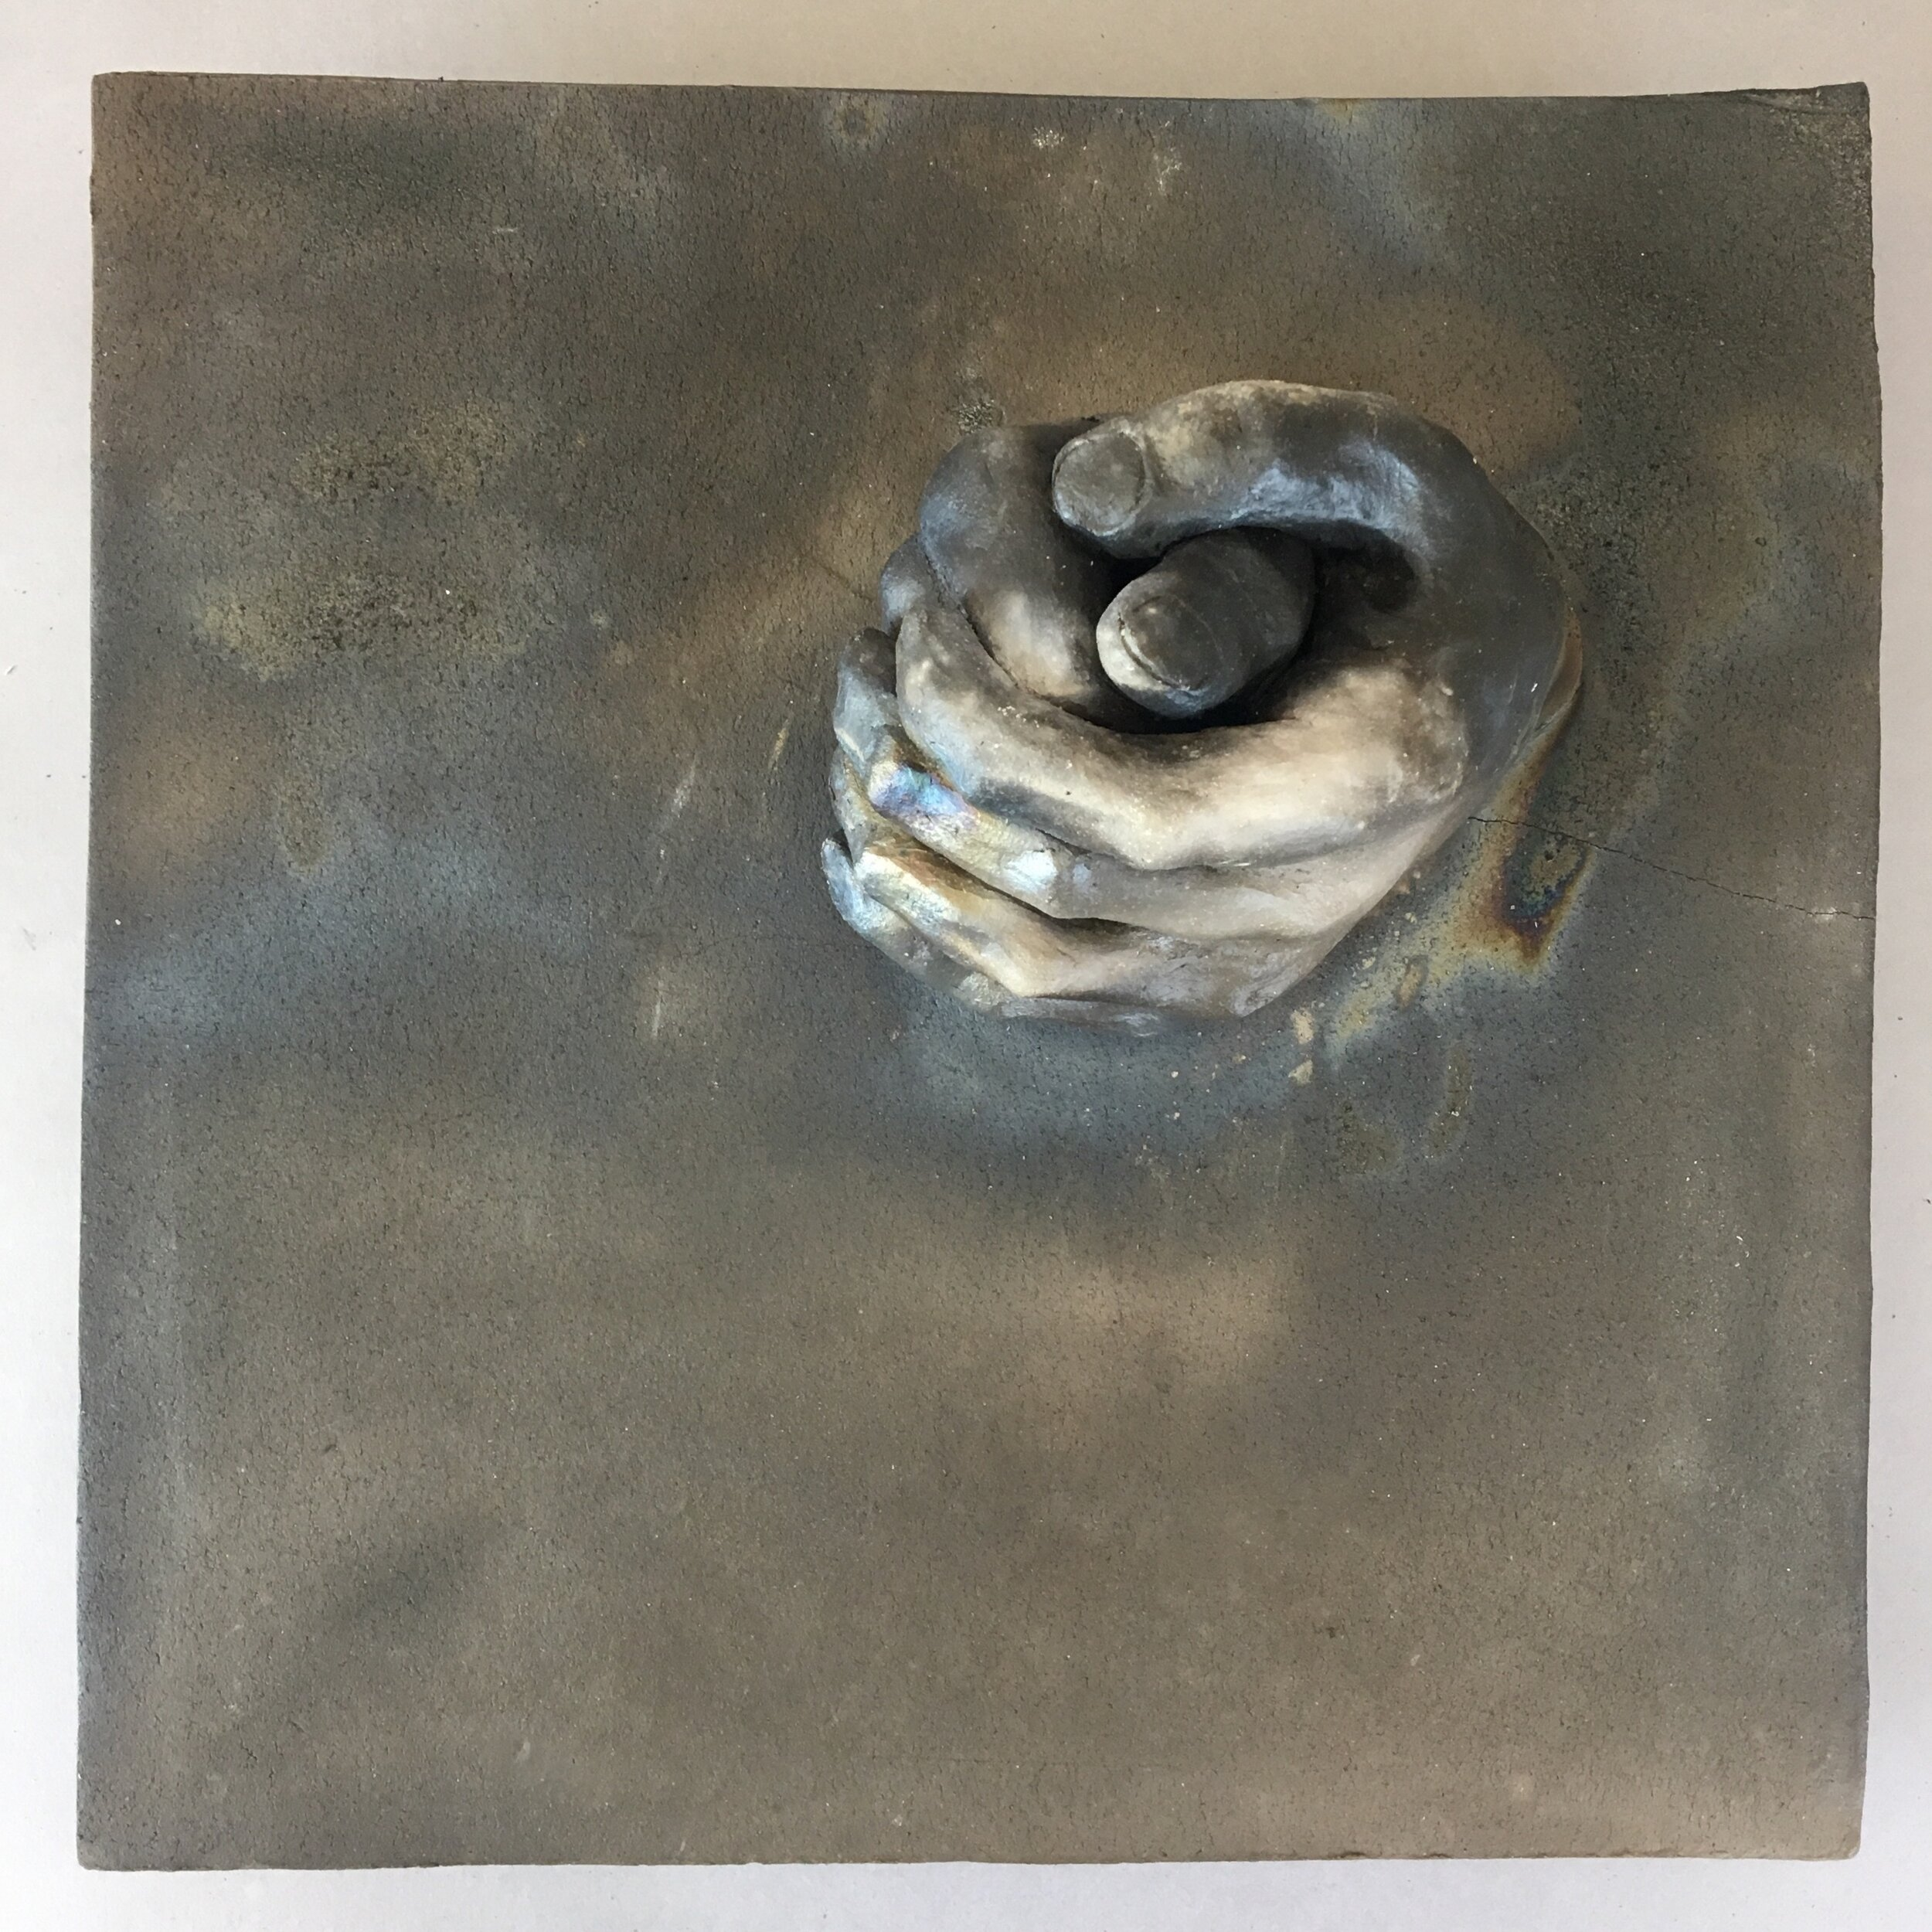 """Becoming  (panel 10 of 15)   Pit-fired ceramic on birch mounts  11.5"""" x 11.5"""" x variable thickness  Relief panels: $400 each  Flat panels: $75 each  Complete set: $4500  Click image to enlarge ⦿  Inquire"""